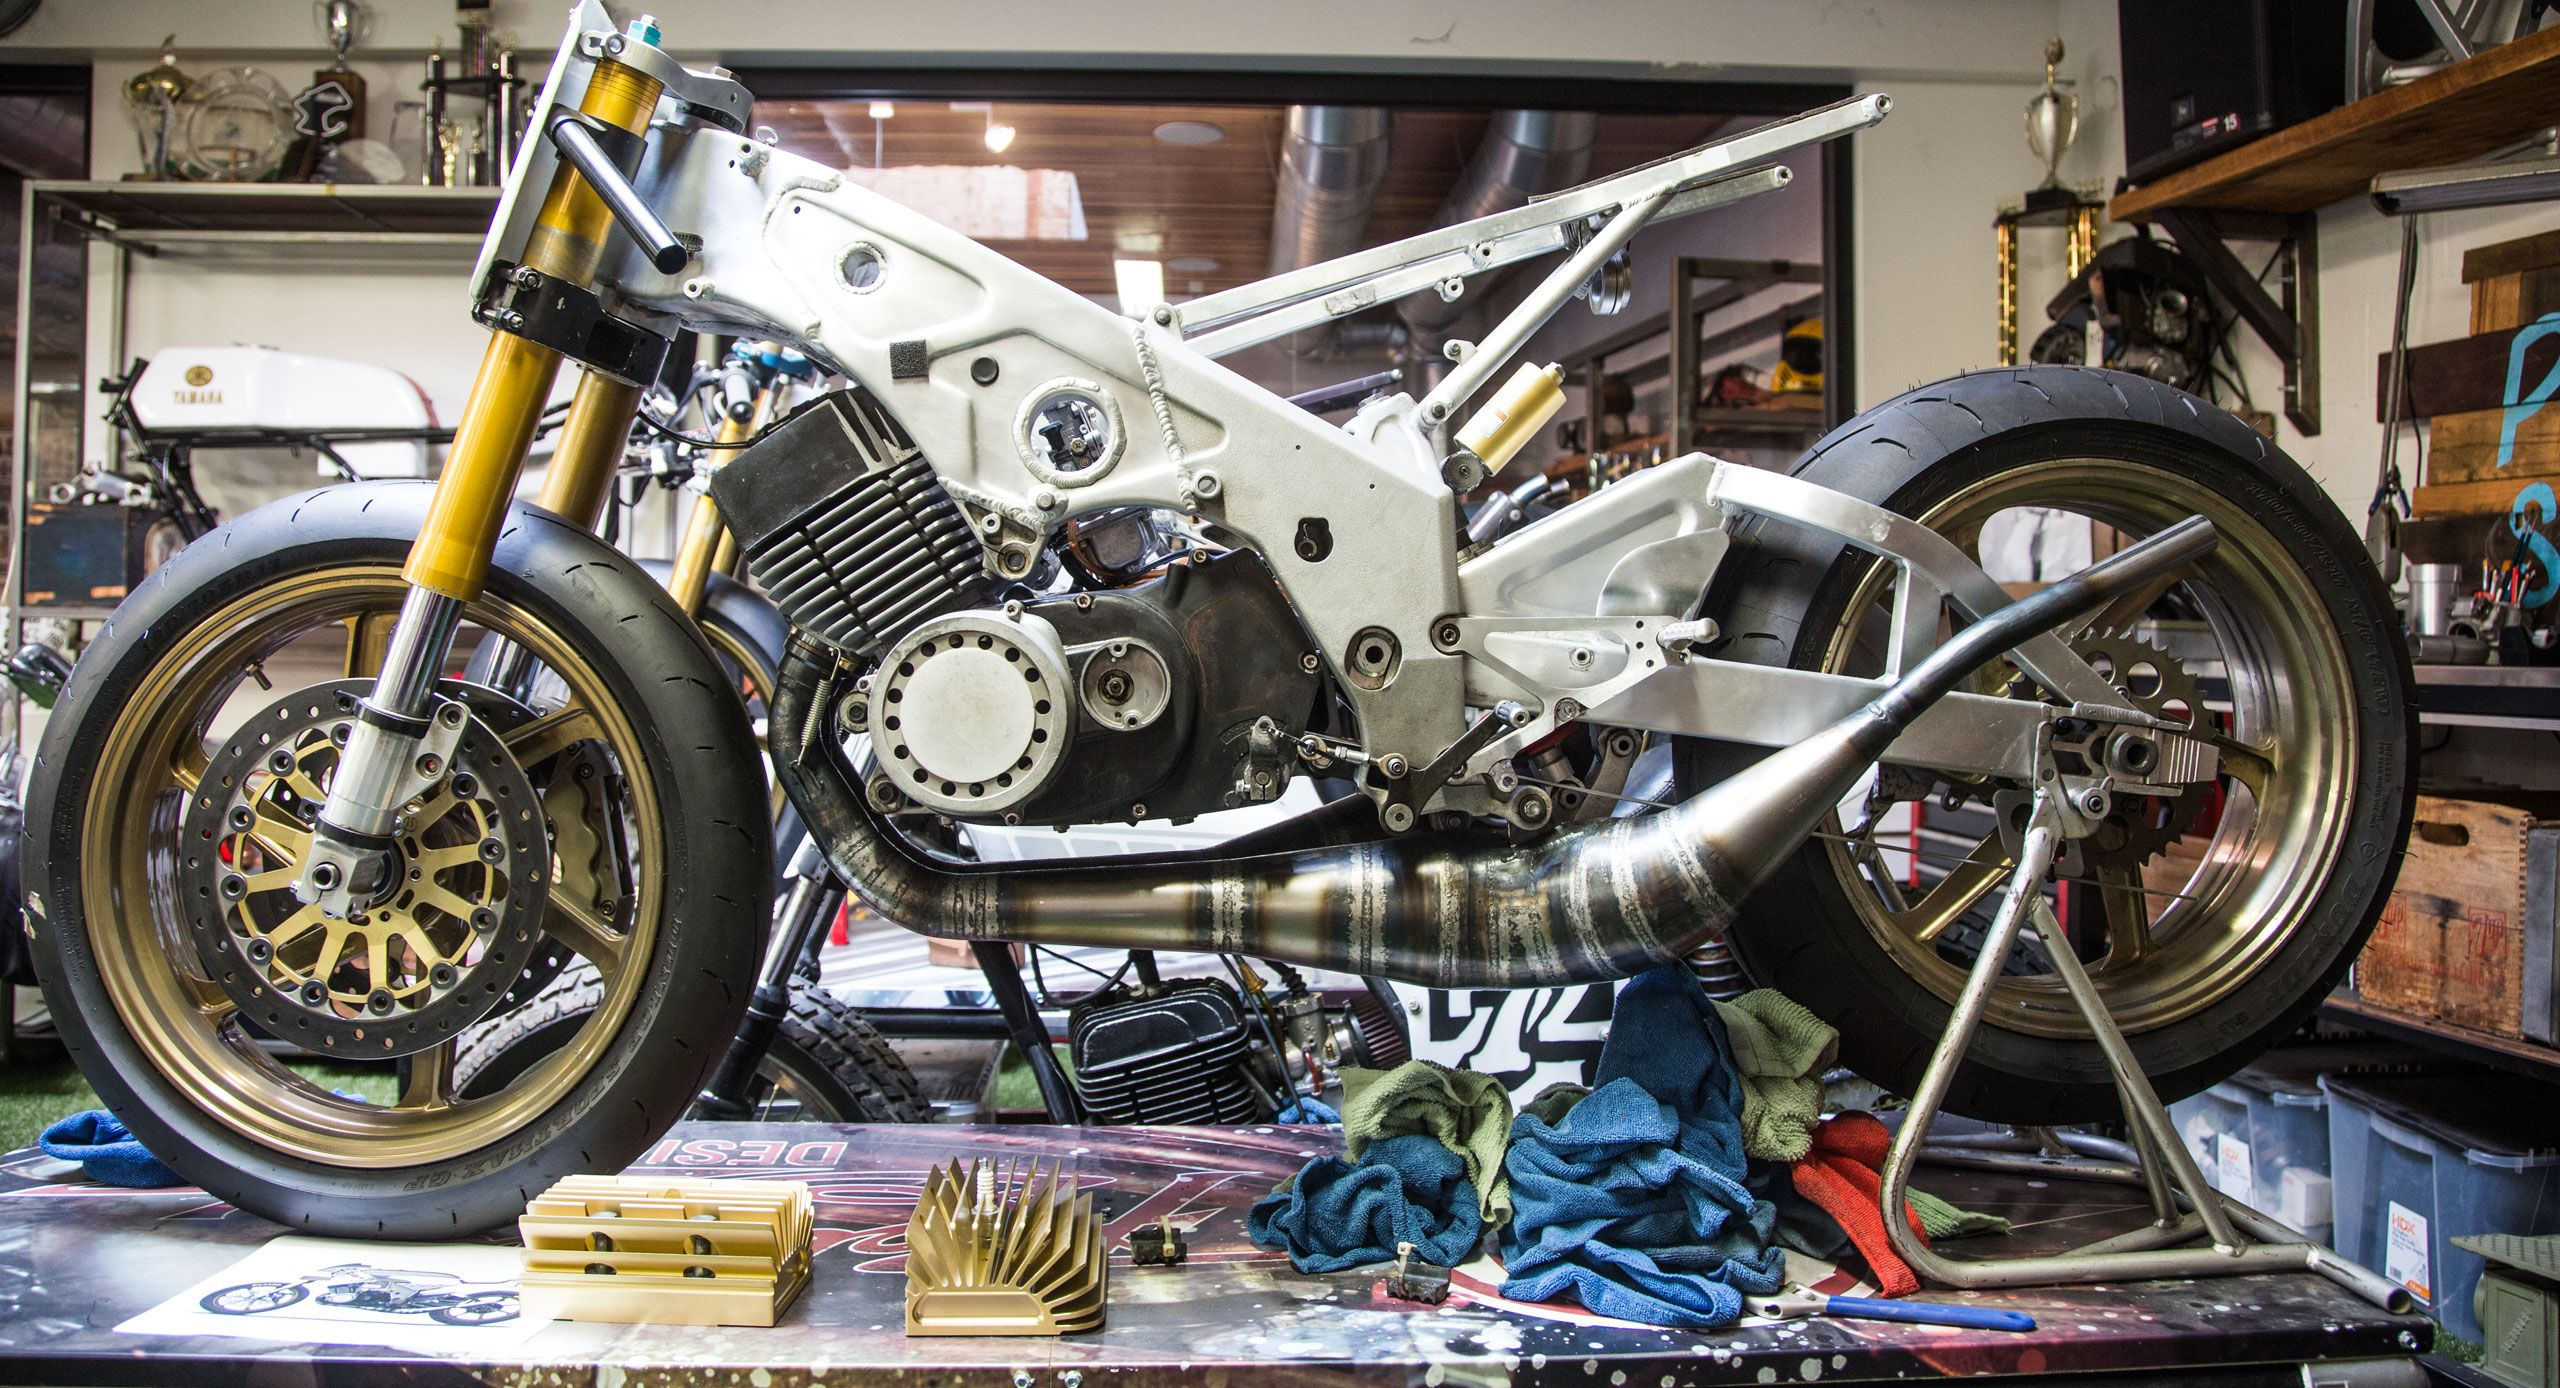 Bikes motorcycle parts and riding gear roland sands design -  2 Stroke Attack Born Free 7 Blog Motorcycle Parts And Riding Gear